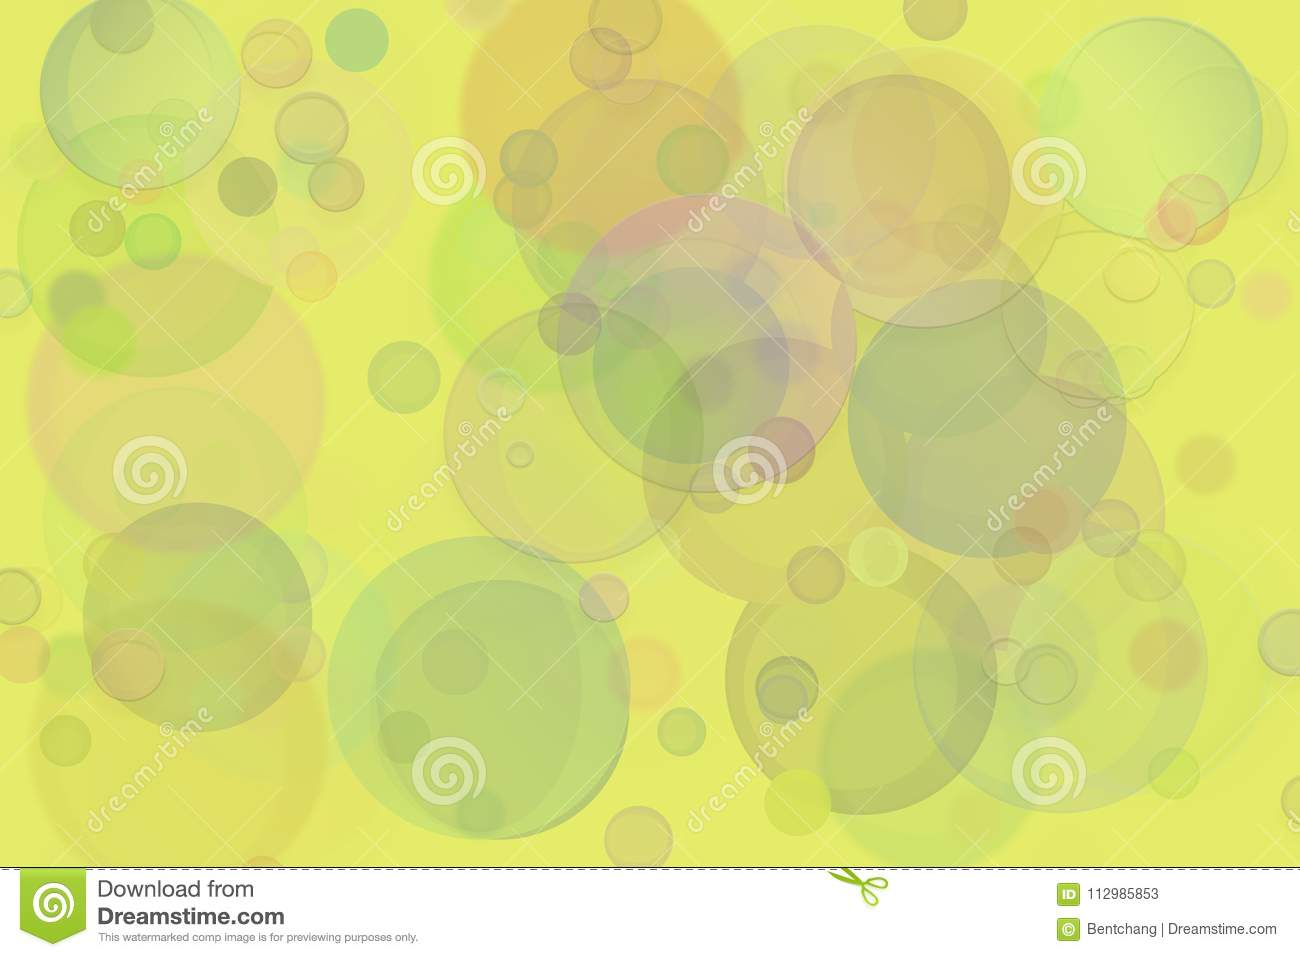 Shape pattern artistic abstract background. Template, web, fashion & oval.